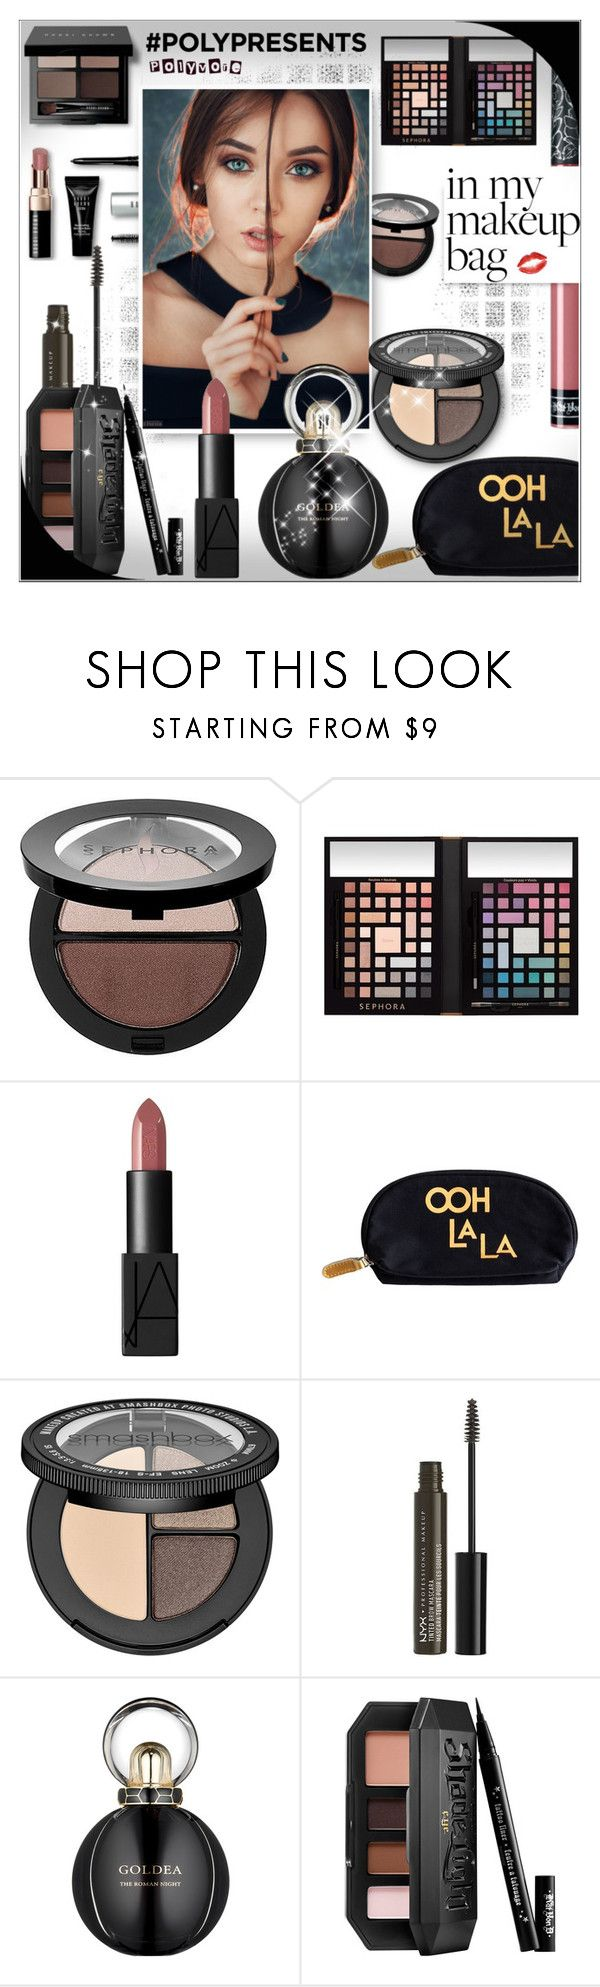 """""""B e a u t y !! #polypresents"""" by alves-nogueira ❤ liked on Polyvore featuring beauty, Bobbi Brown Cosmetics, Sephora Collection, Rosanna, NYX, Bulgari and Kat Von D"""